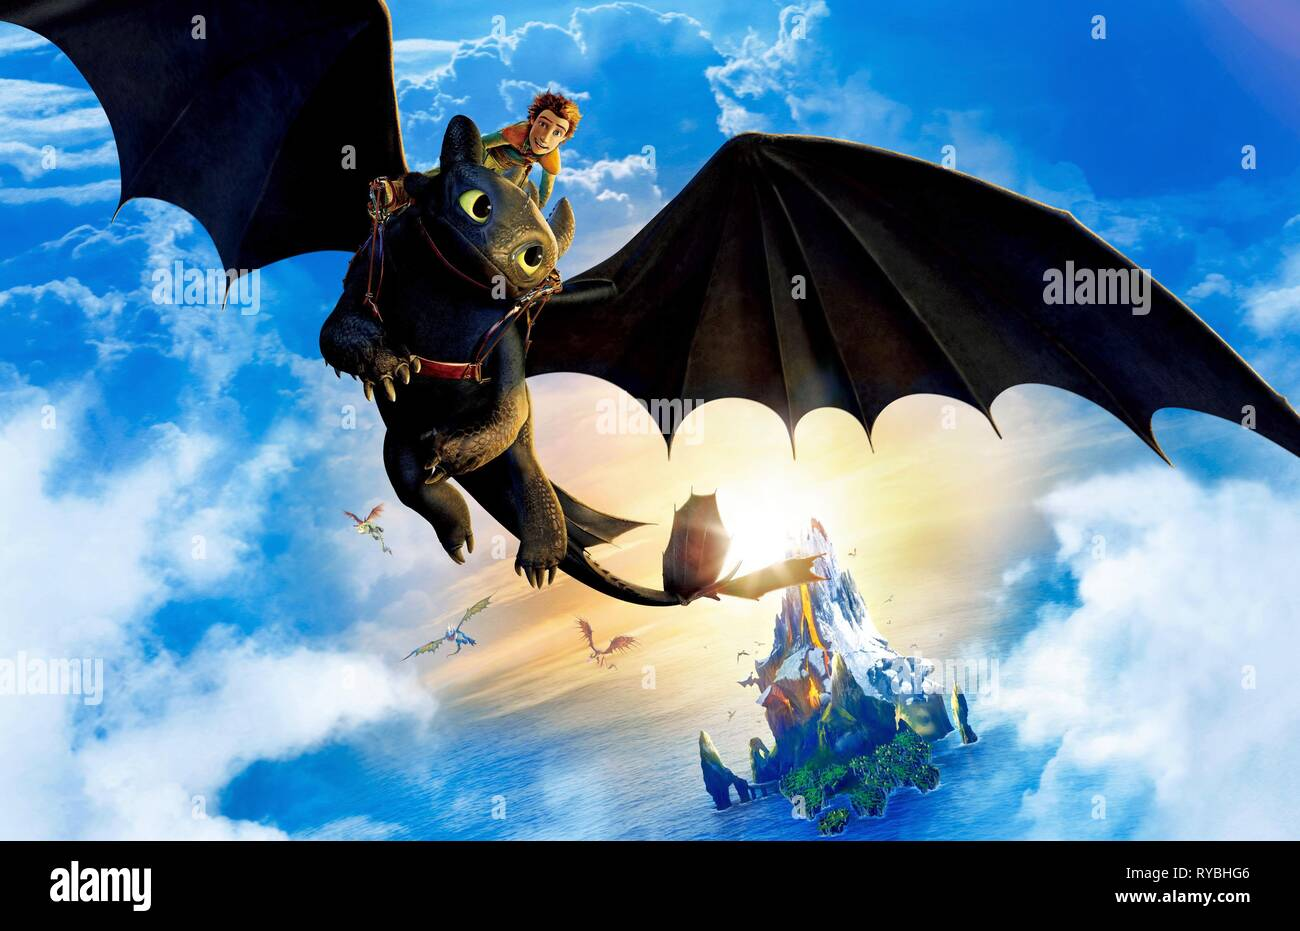 How To Train Your Dragon Hiccup High Resolution Stock Photography And Images Alamy